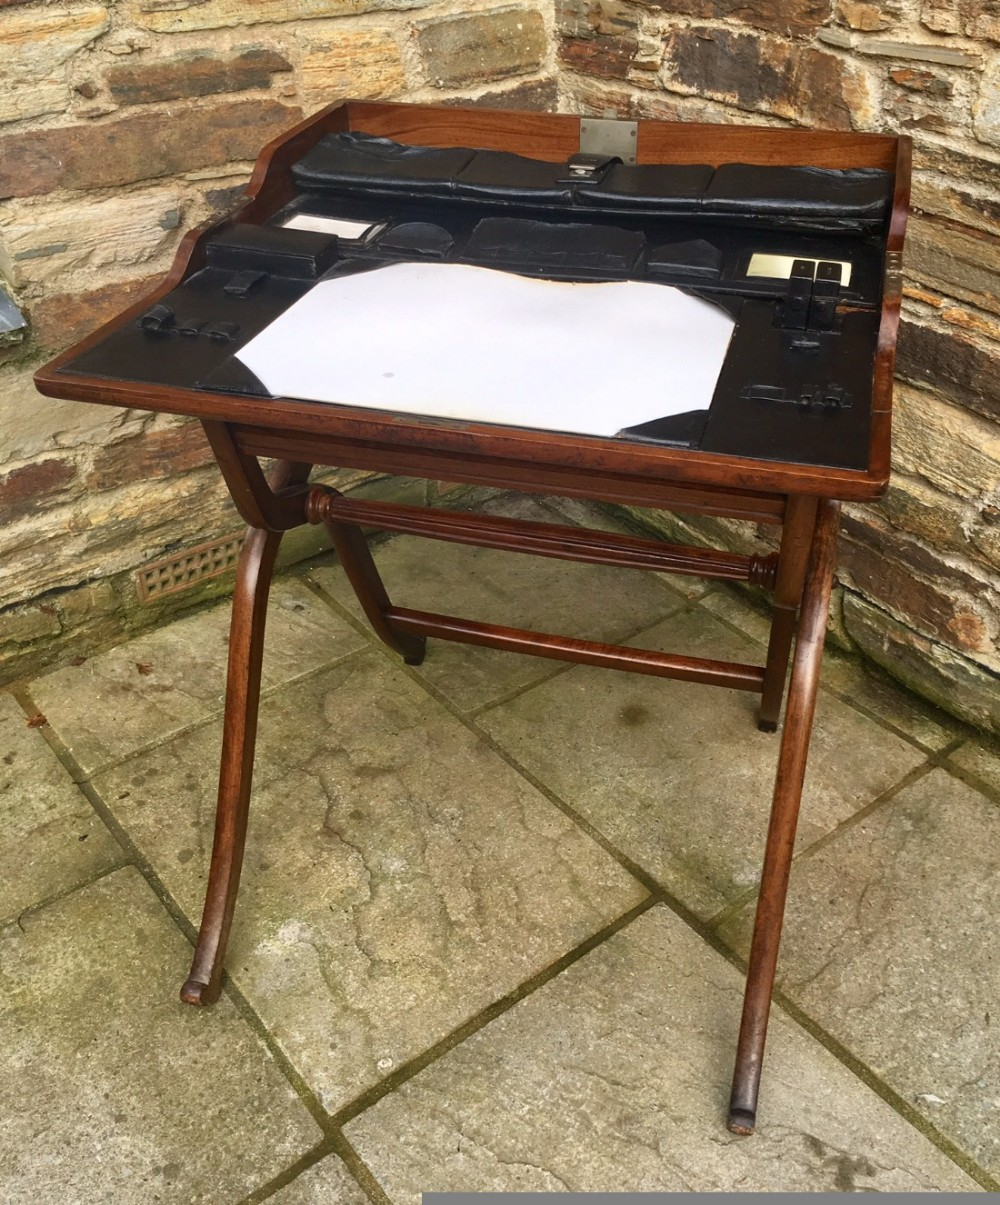 antique 19th century folding campaign writing table desk - Antique 19th Century Folding Campaign Writing Table Desk 436341